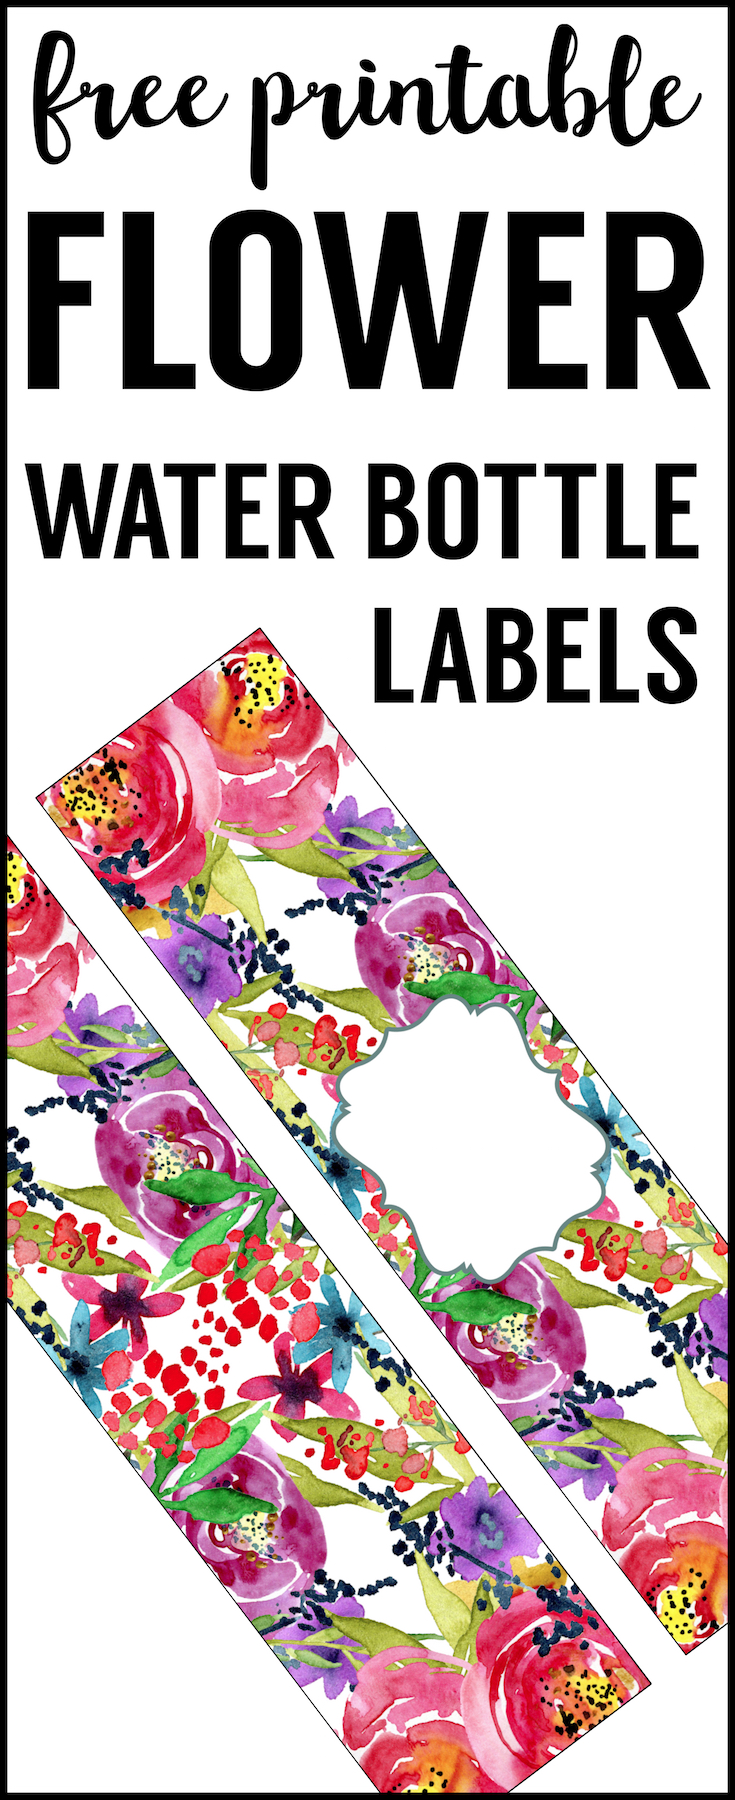 Spring Water Bottle Labels Free Printable DIY. Flower Water Bottle wrappers for a floral baby shower, birthday party, or bridal shower, or wedding.